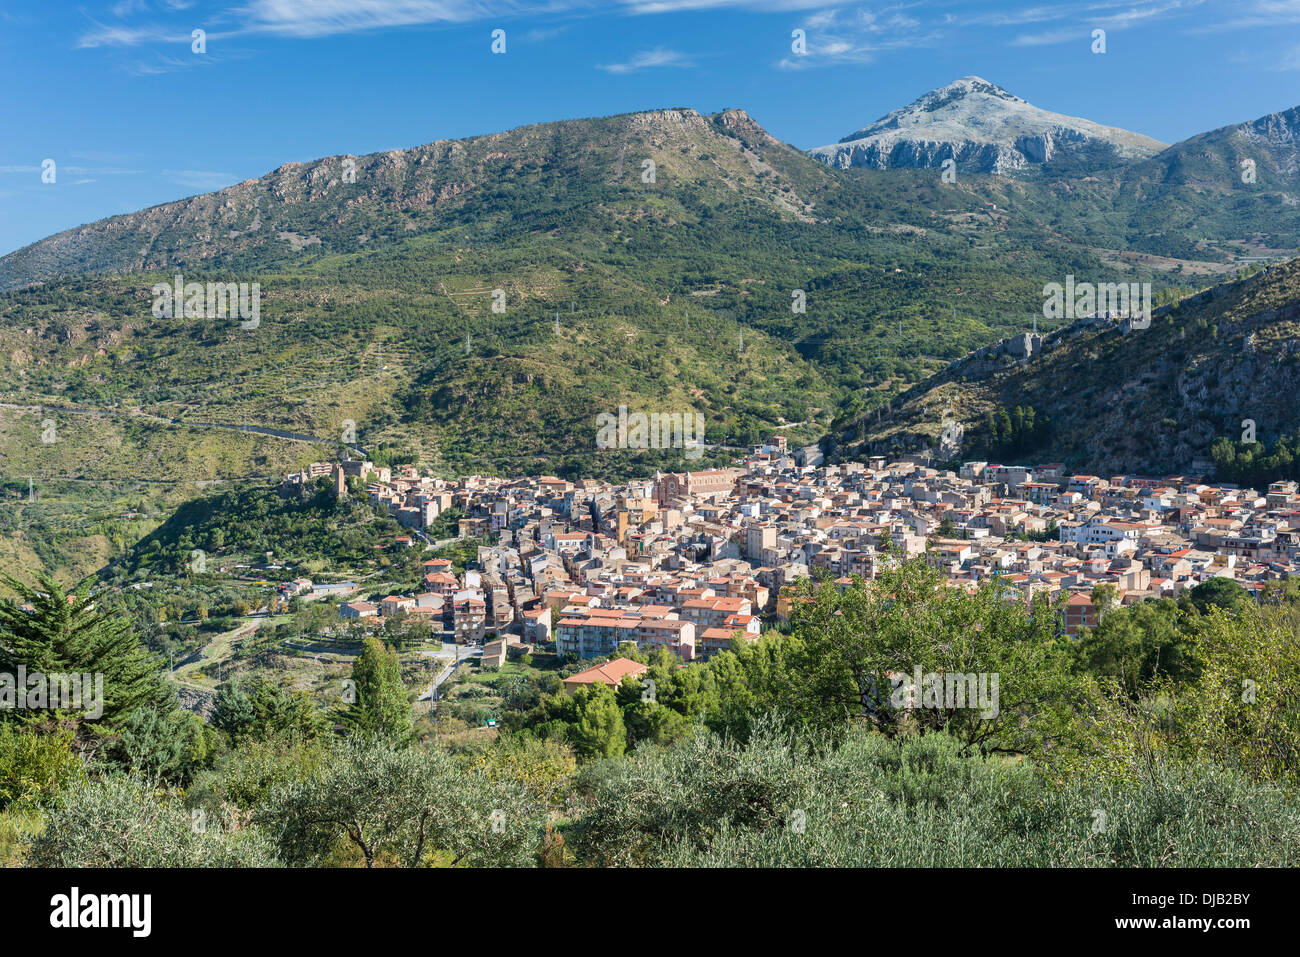 Madonie Mountains, Parco delle Madonie, Madonie Regional Natural Park, town of Collesano at front, Collesano, Sicily, Italy - Stock Image